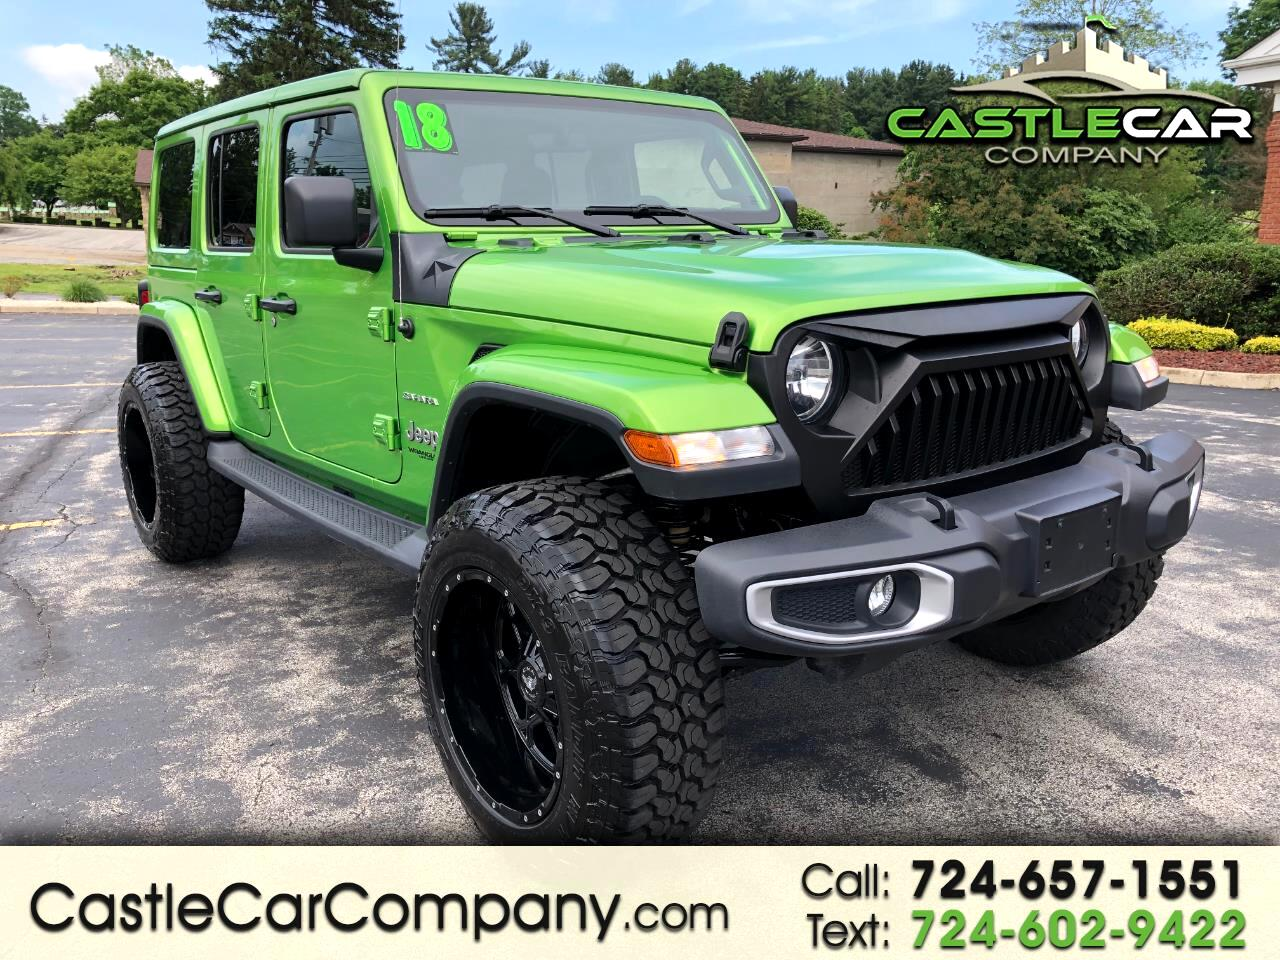 2018 Jeep Wrangler Unlimited JL NEW BODY STYLE FULLY CUSTOMIZED